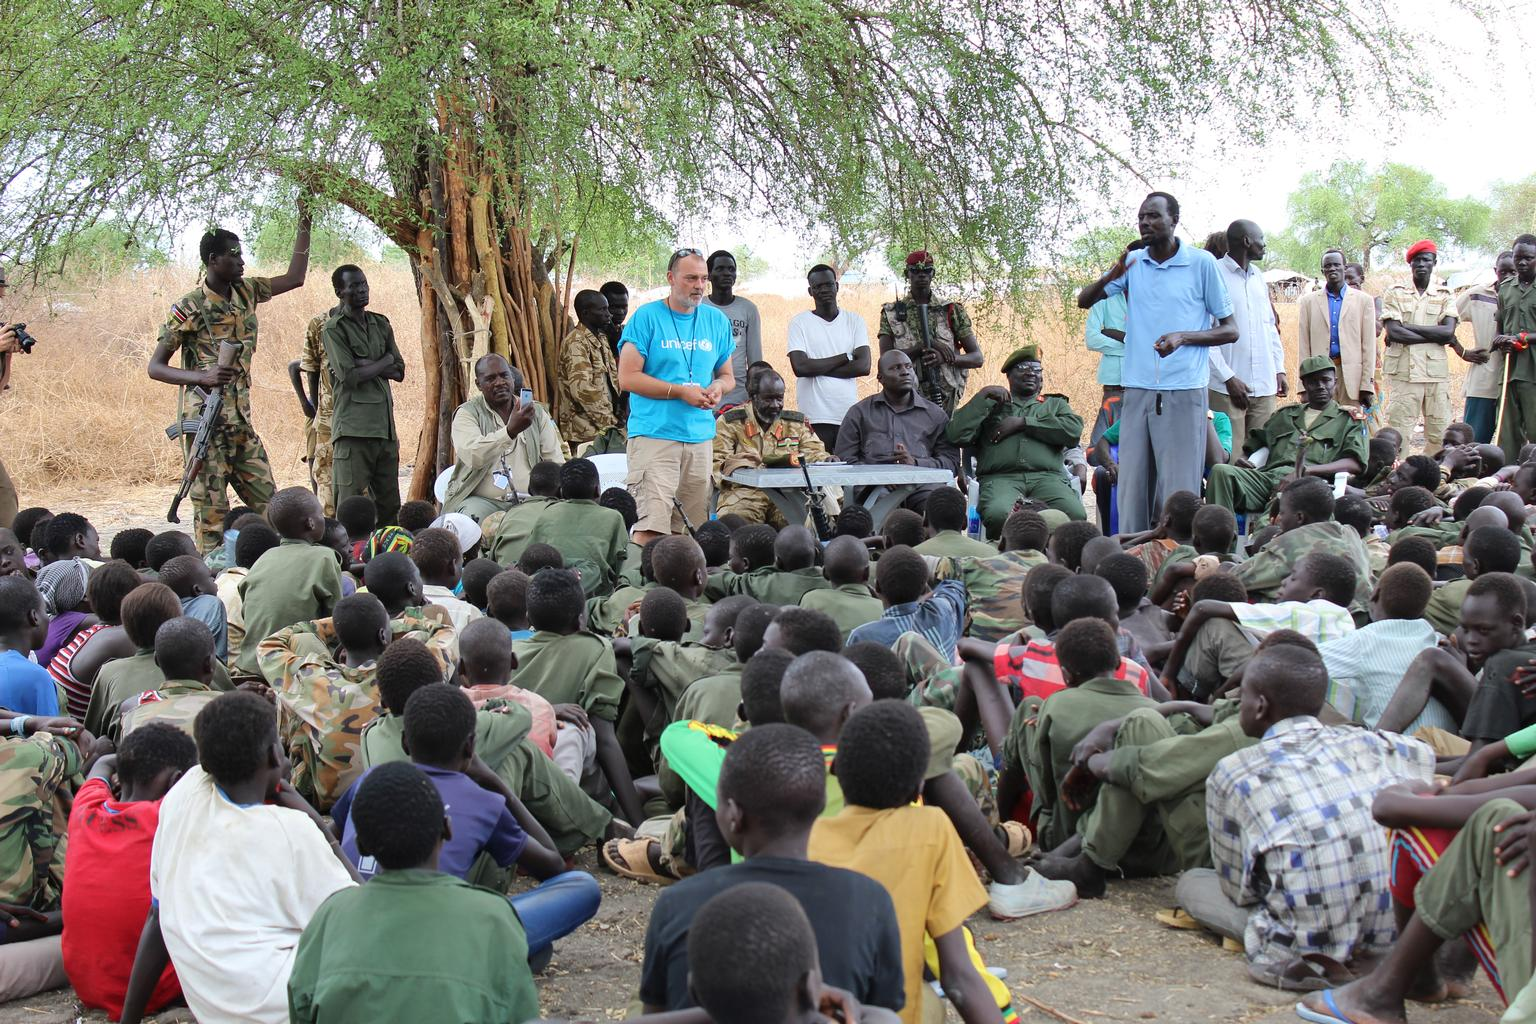 Shaun Collins, a UNICEF child protection specialist, speaks to children after their release from the South Sudan Democratic Army (SSDA) Cobra Faction armed group in Jonglei State. © UNICEF/NYHQ2015-0501/McKeever